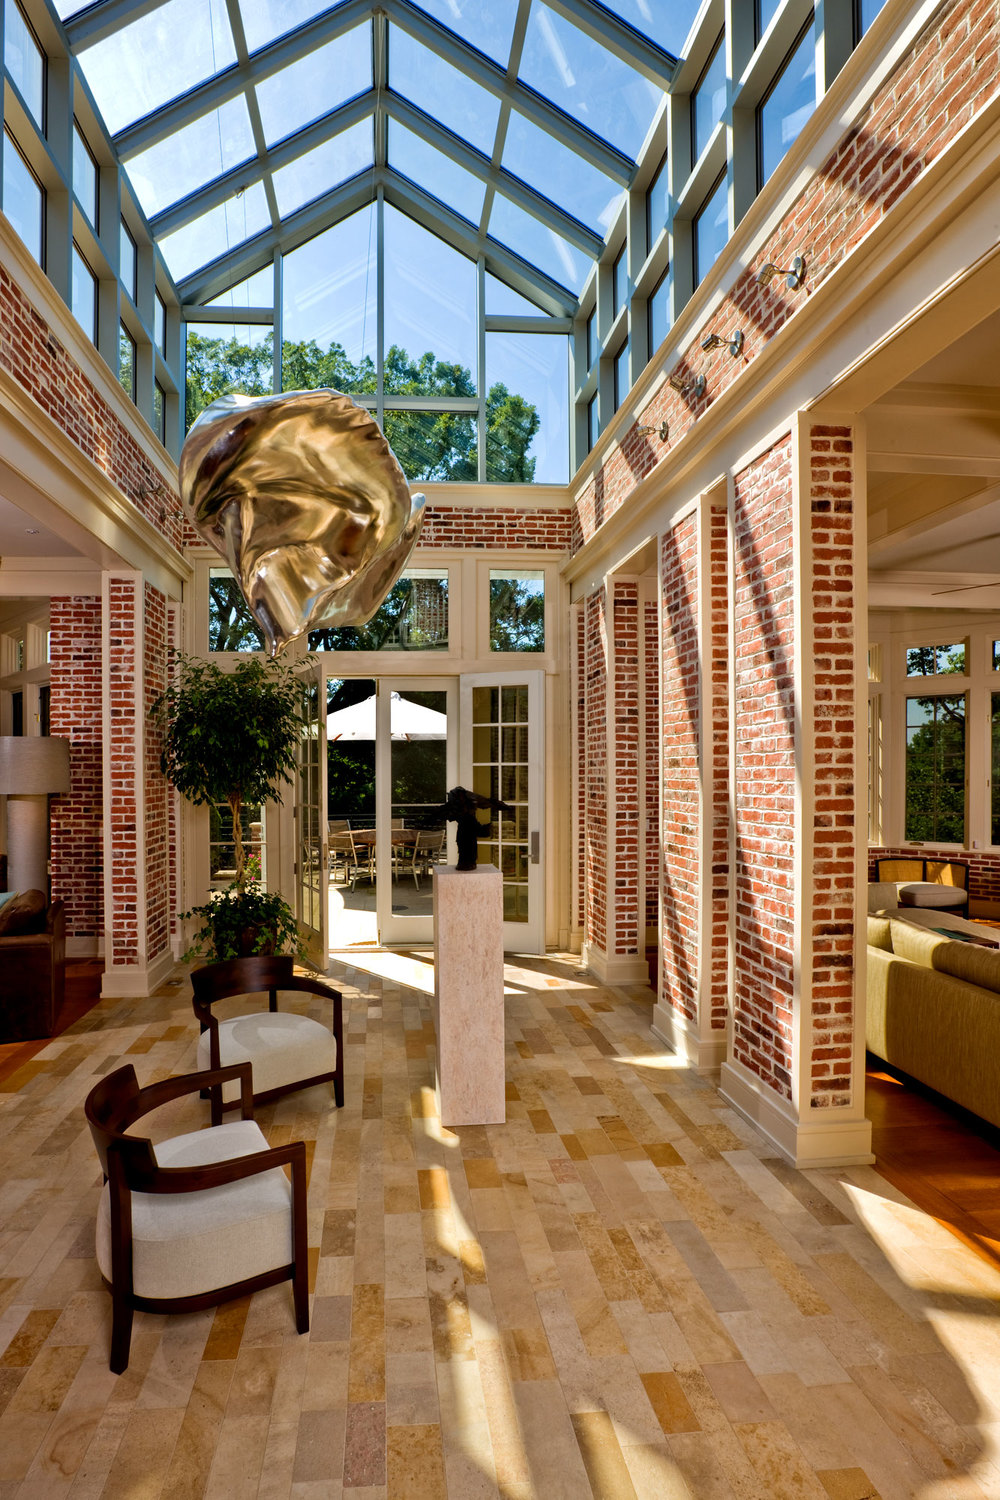 View looking out towards the garden under the monumental glass skylight. Natural light pours in, illuminating the exposed brickwork in a warm color.